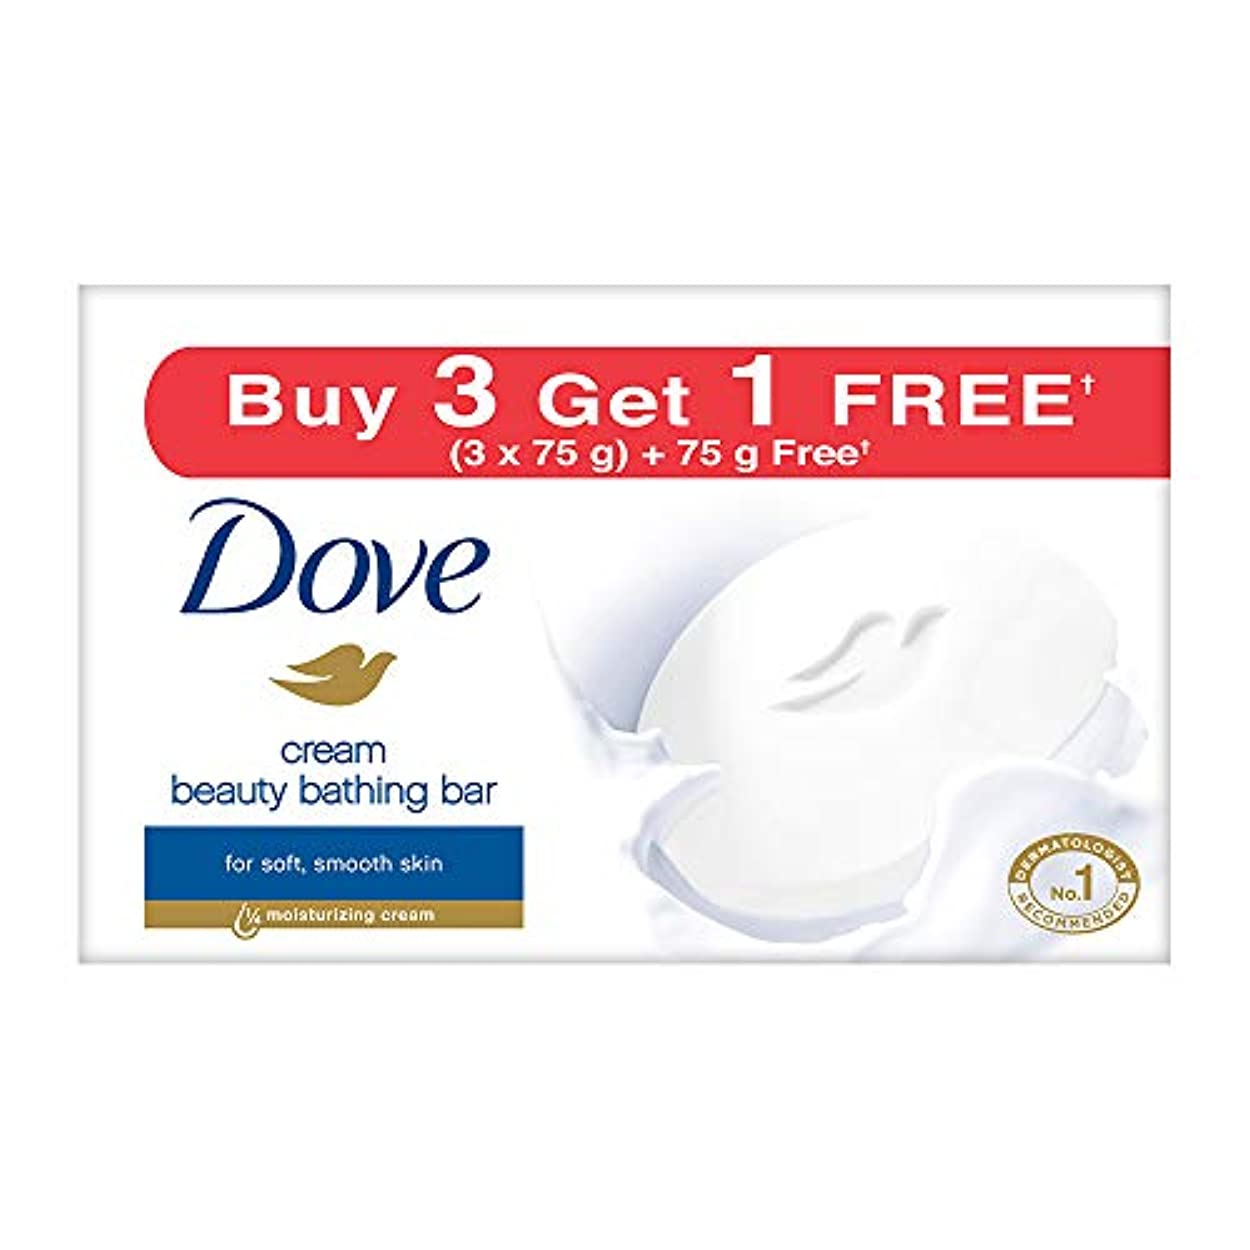 Dove Cream Beauty Bathing Bar, 4x75g